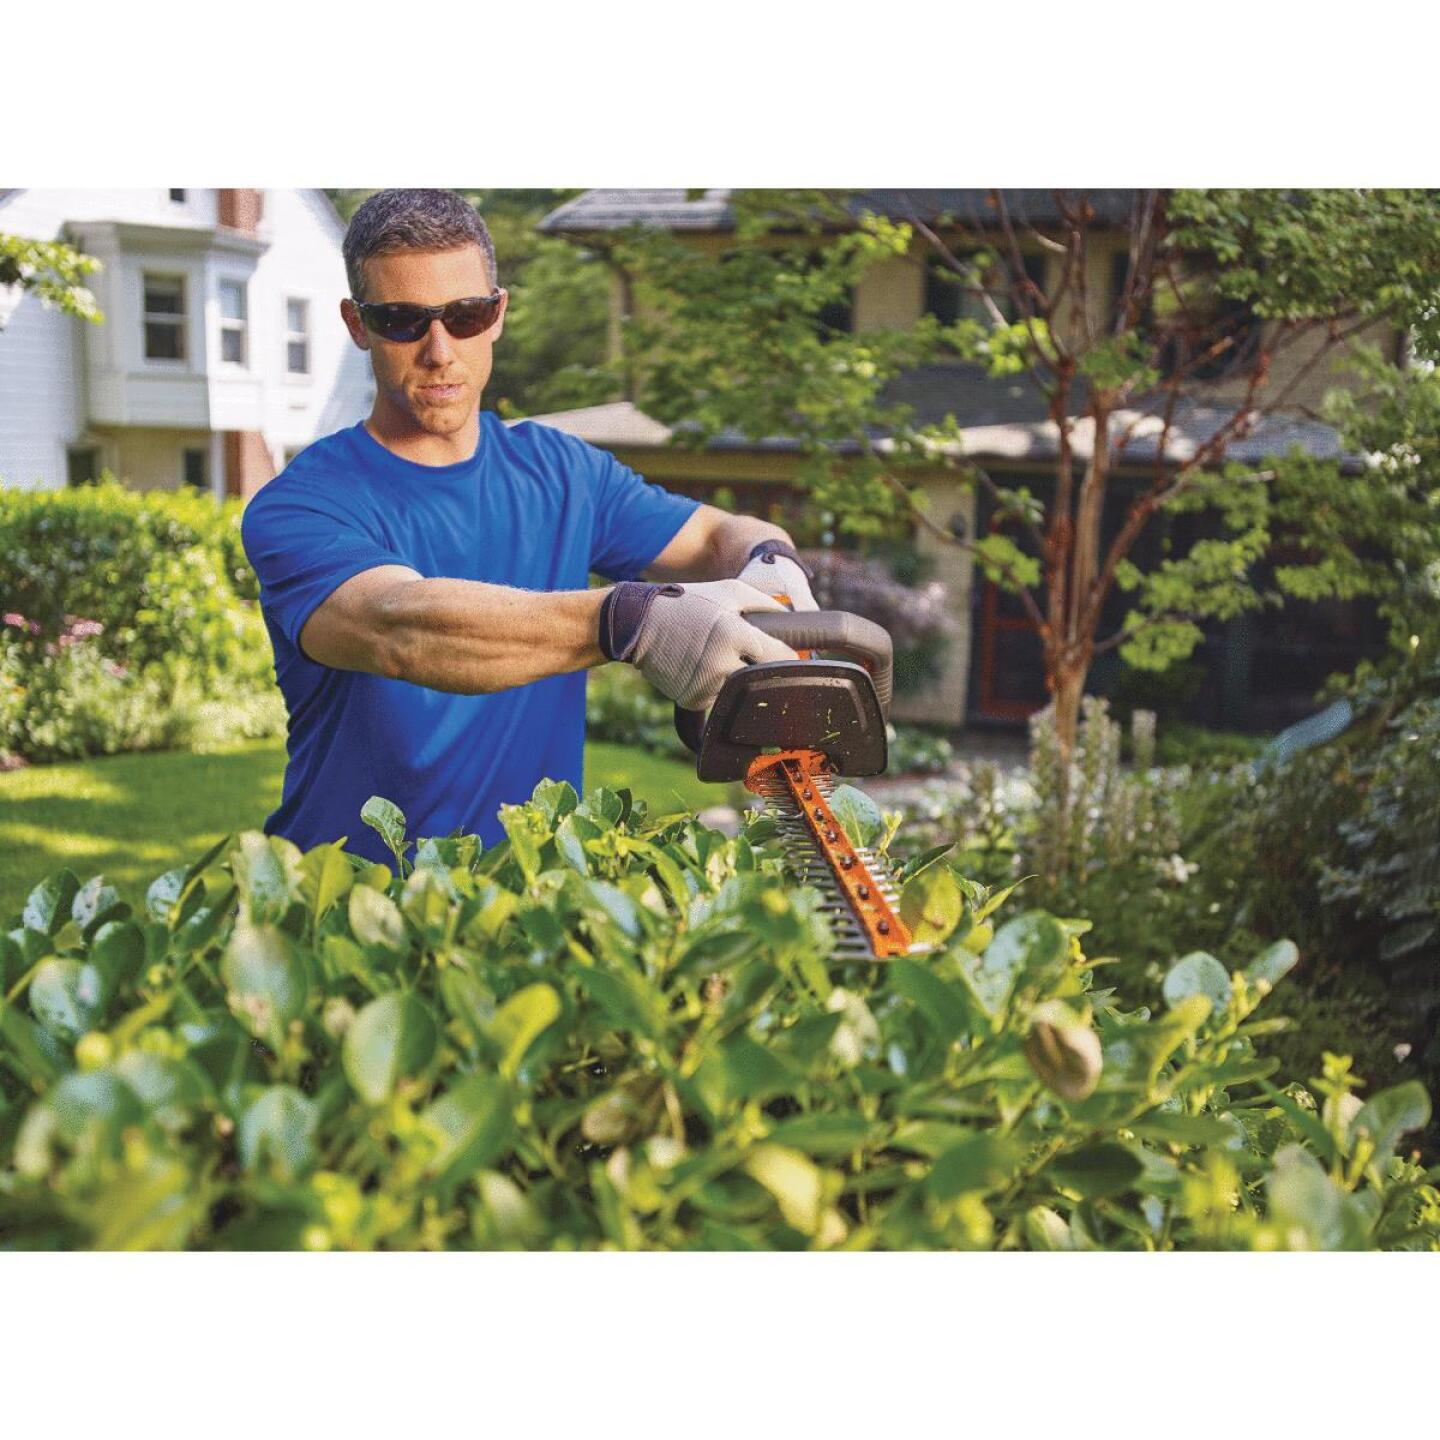 Black & Decker PowerCut 22 In. 20V Lithium Ion Cordless Hedge Trimmer Image 2